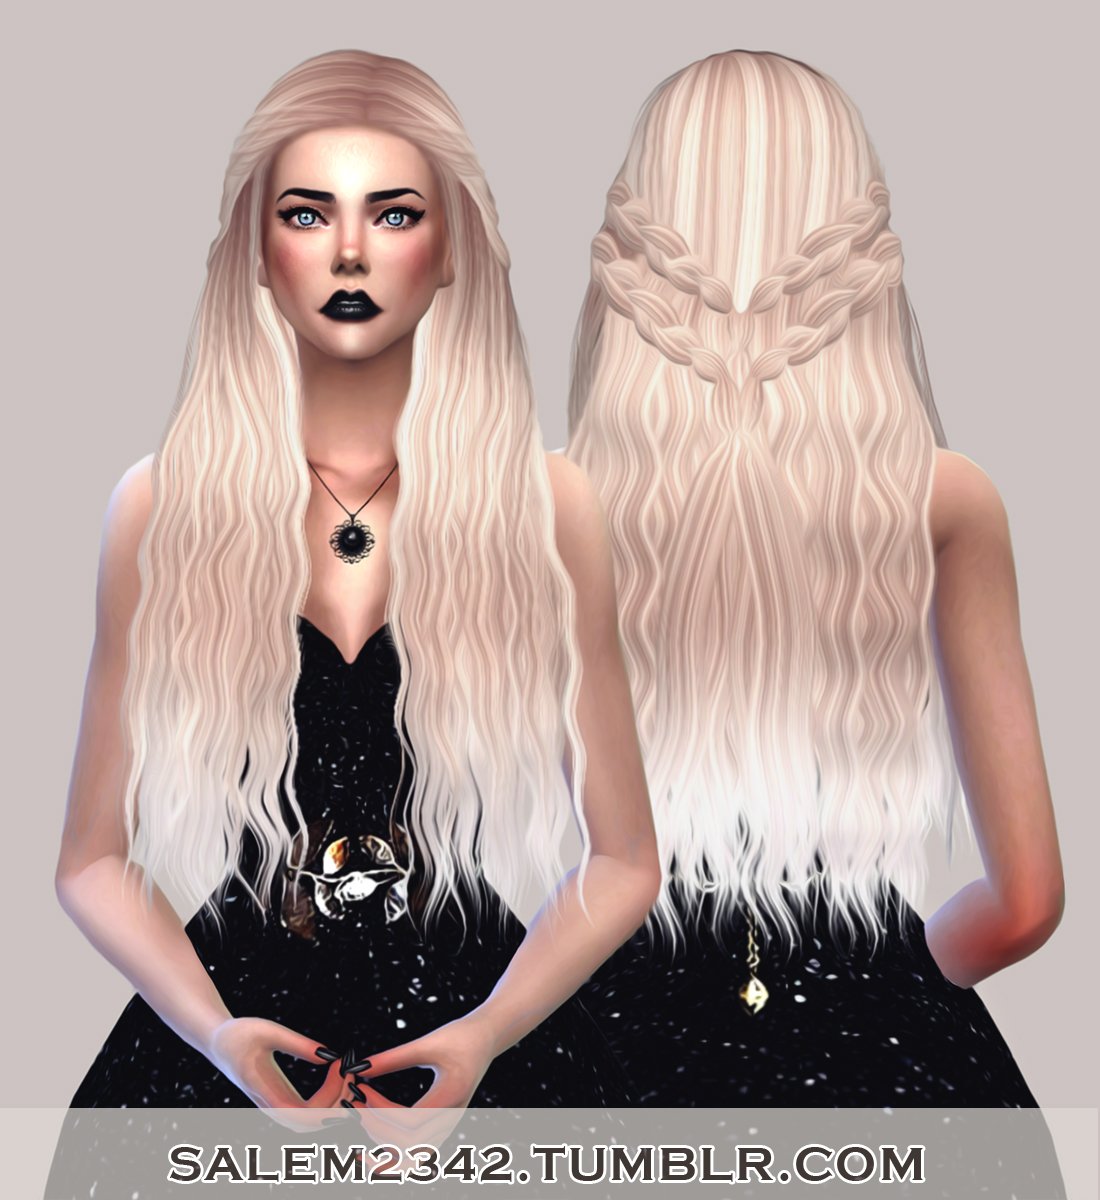 Stealthic Cadence Hair Retexture in 30 Colors by Salem2342